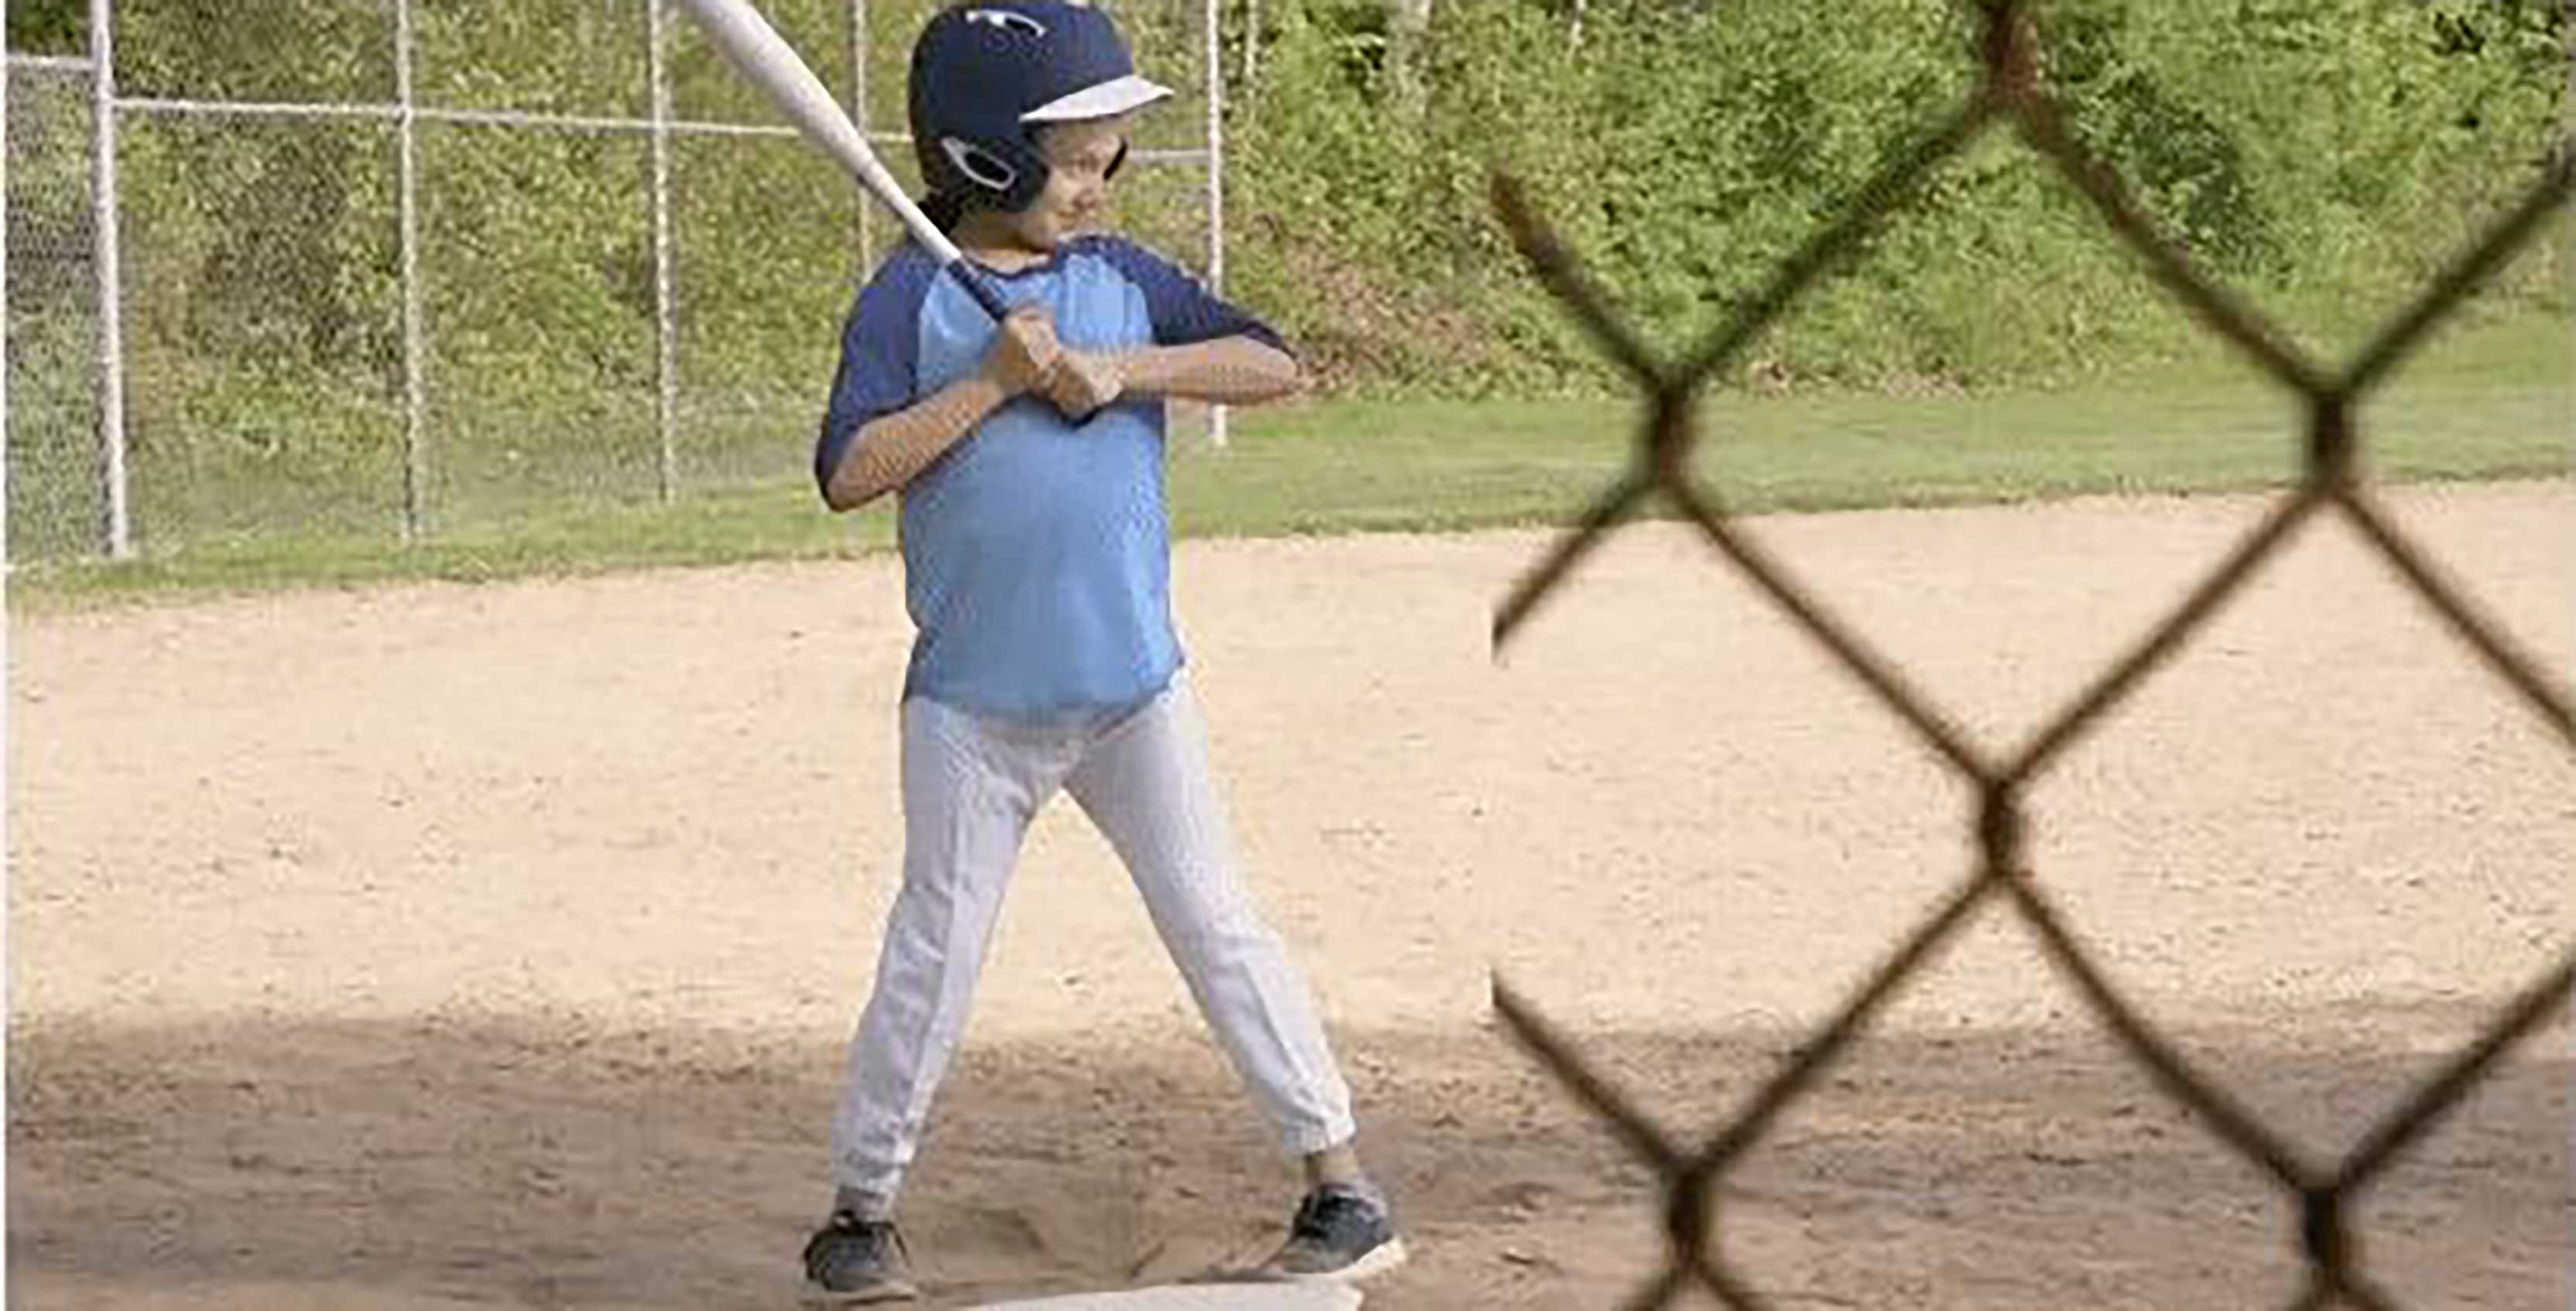 Google baseball kid